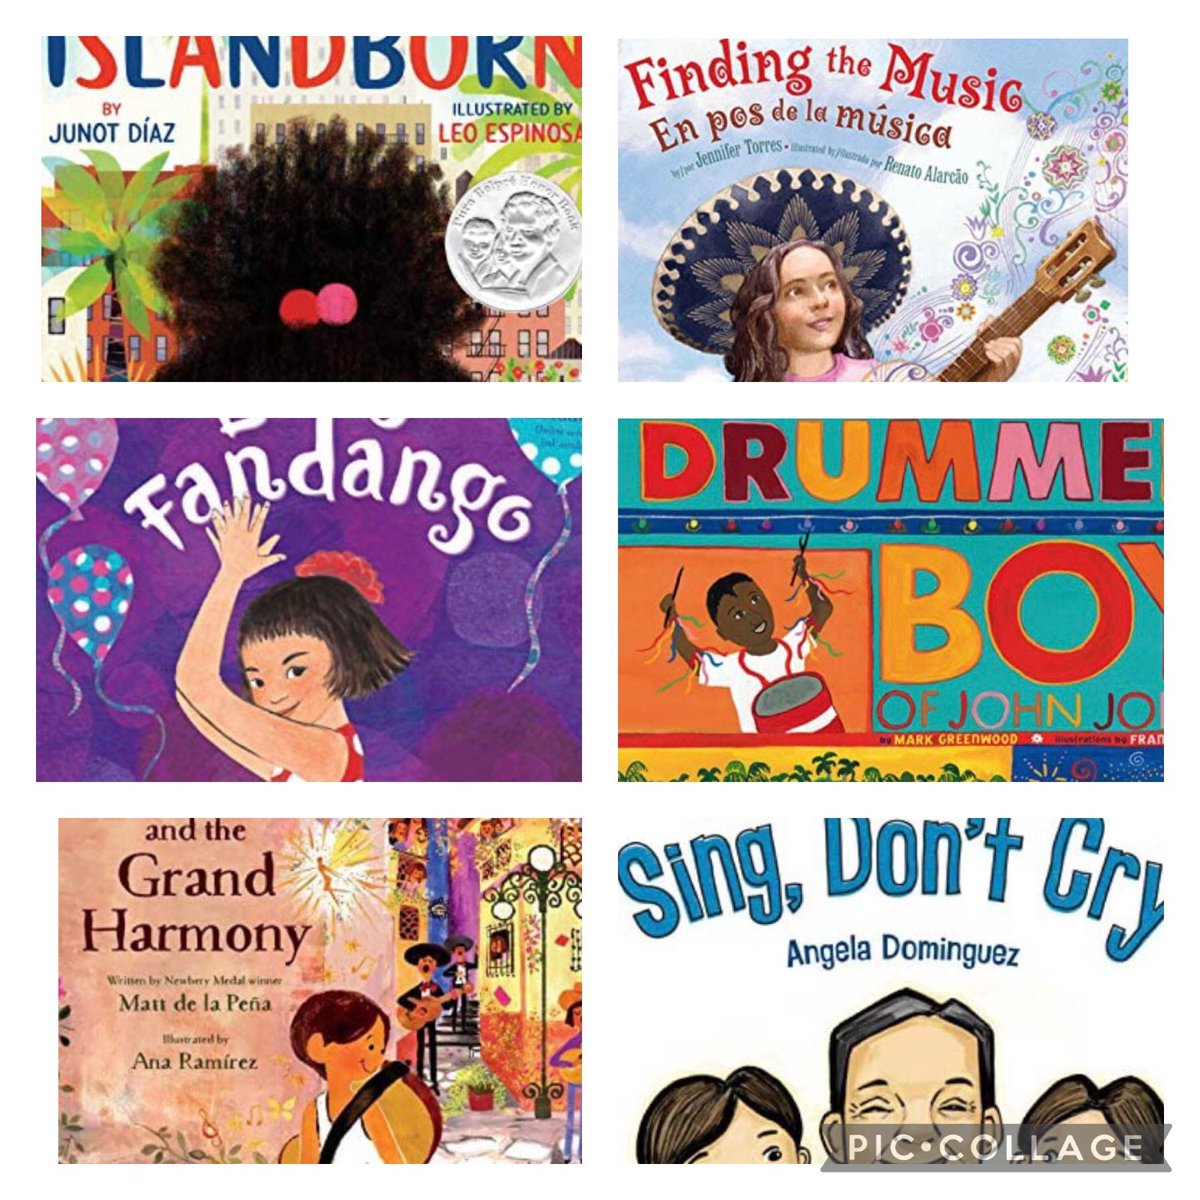 #studentsuccess in #school depends on #literacy. Help me prepare my #students to be #FutureReady by providing them with #multicultural #books . #donate #retweet if you can  @cpbrown1984 @GlueGobs @FurryFriendsDC @HabibtiZaynab https://t.co/r1YLbY2uSL #mondaythoughts https://t.co/f7w7L0Boxp